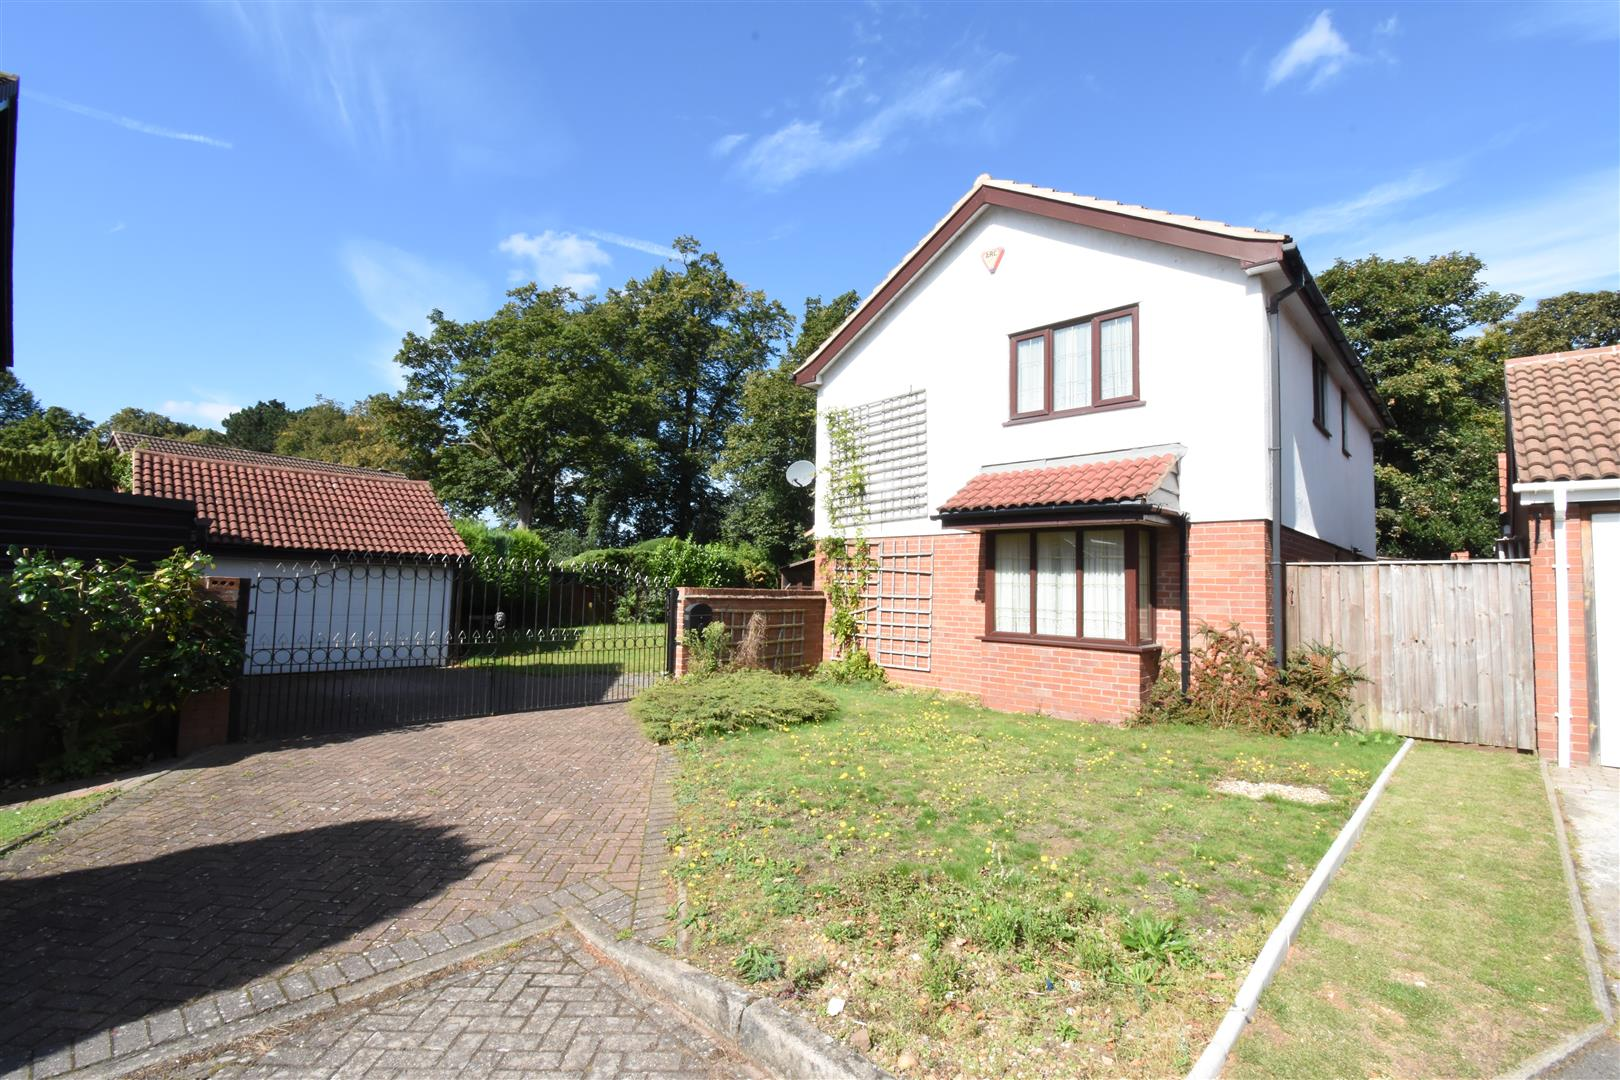 3 bed house for sale in Castle Hills Drive, Castle Bromwich, Birmingham 6